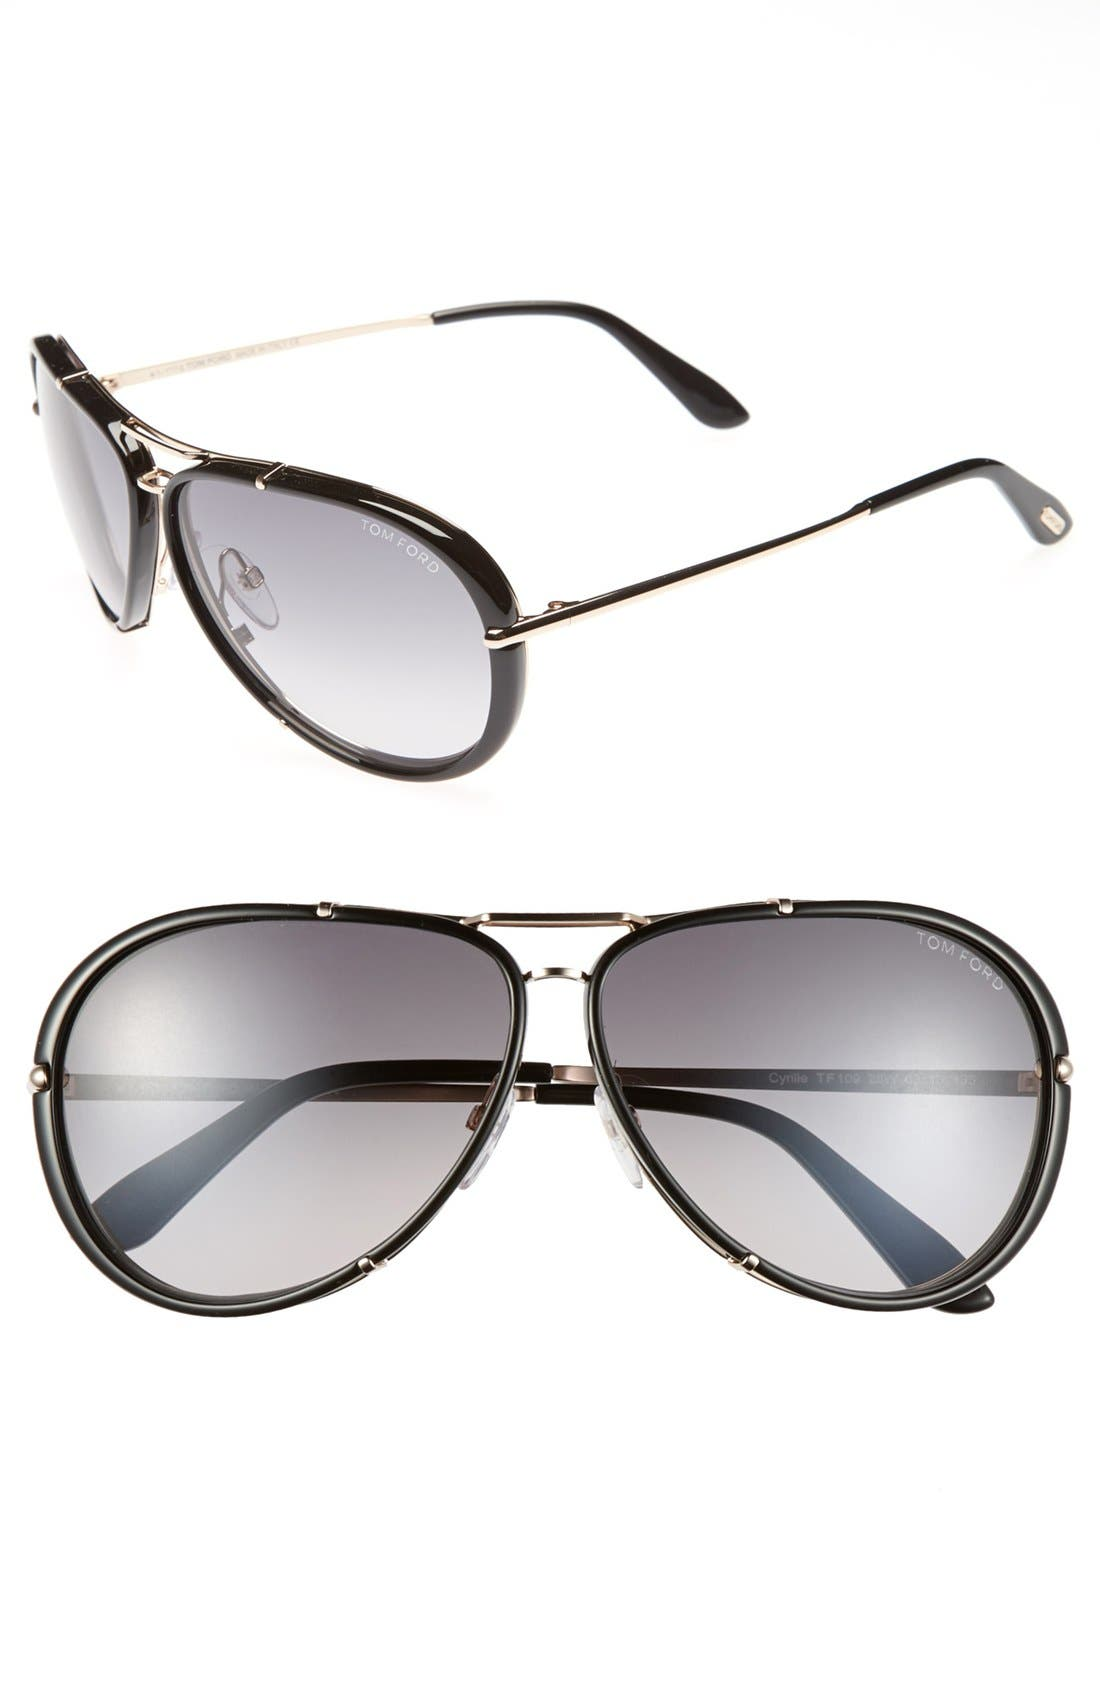 Alternate Image 1 Selected - Tom Ford 'Cyrille' 63mm Sunglasses